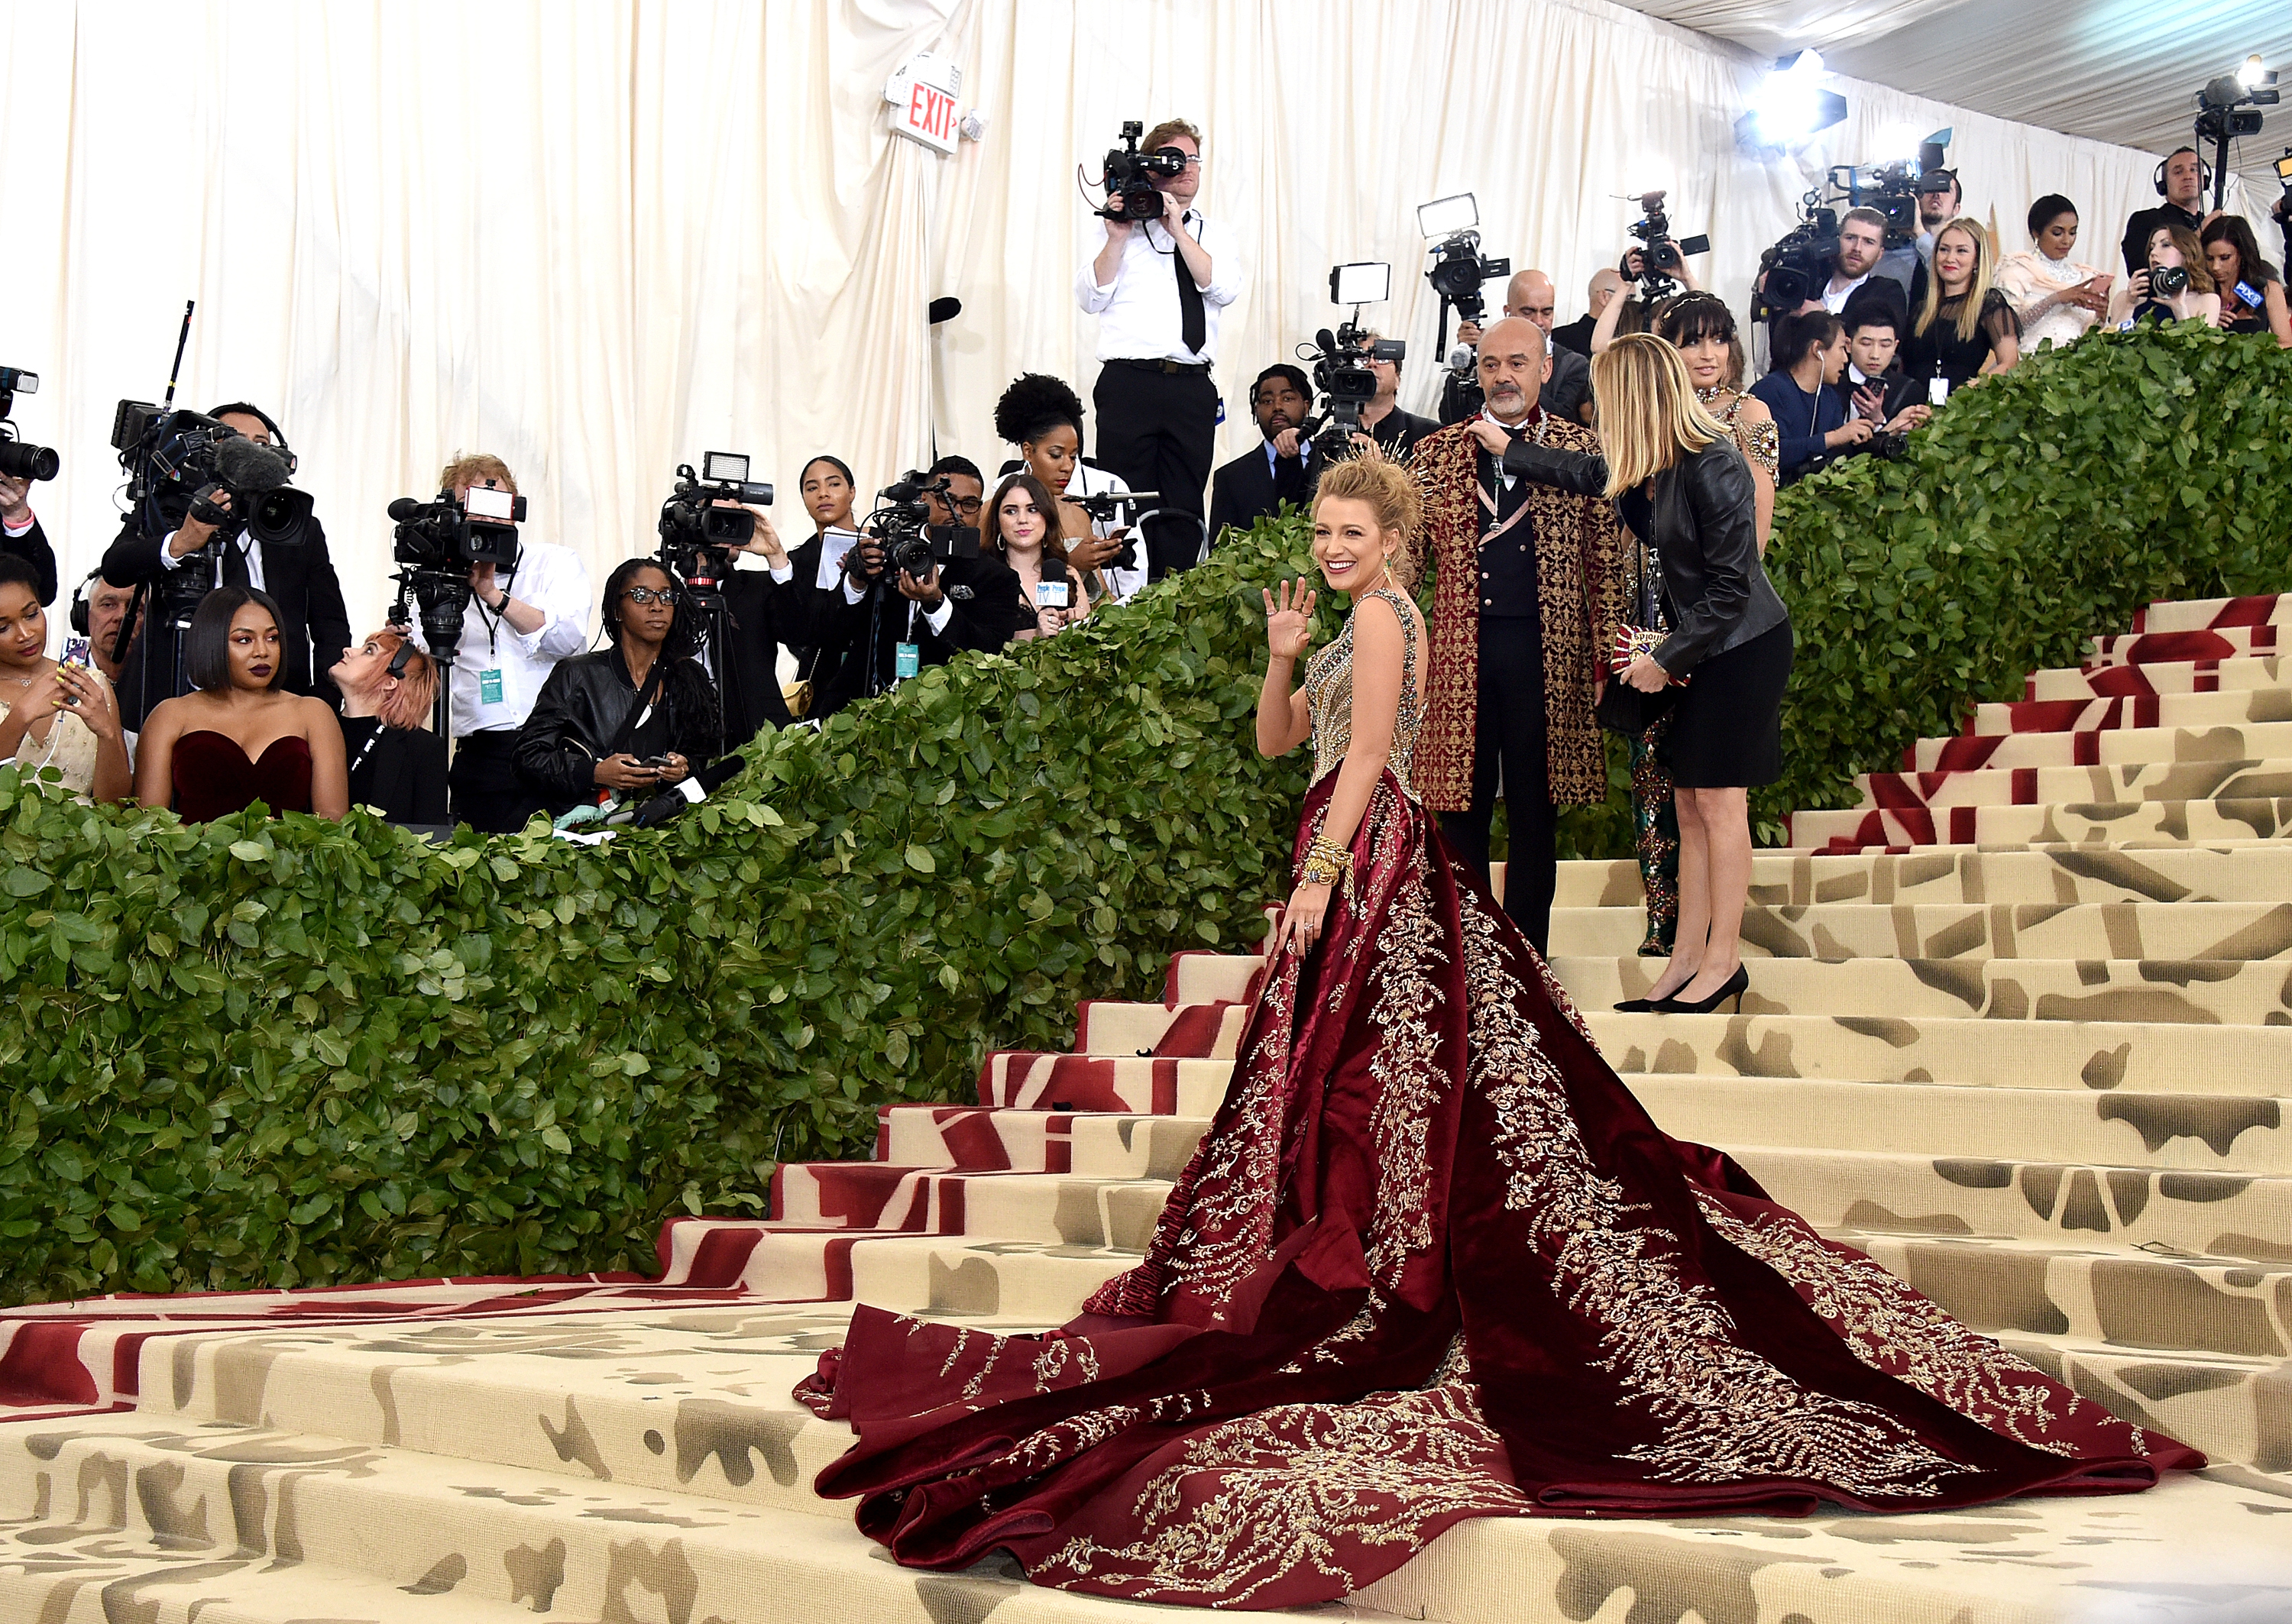 2019 year lifestyle- Red style carpet met gala event